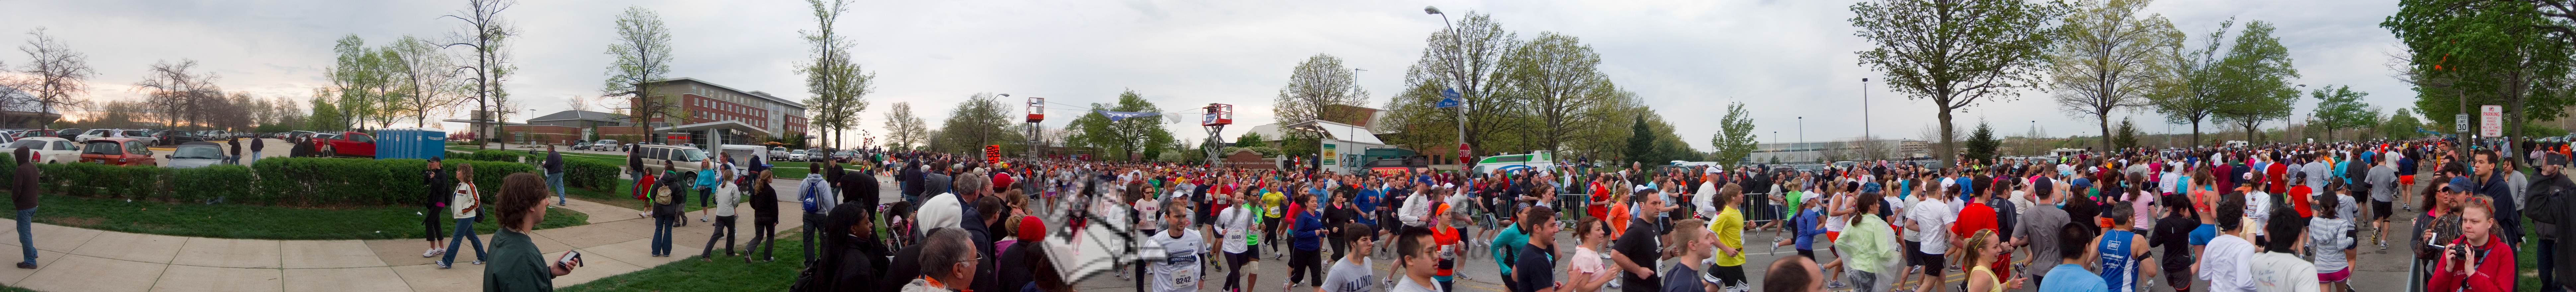 p60-1-p60-8half.jpg  Illinois Marathon 2011 Starting Line